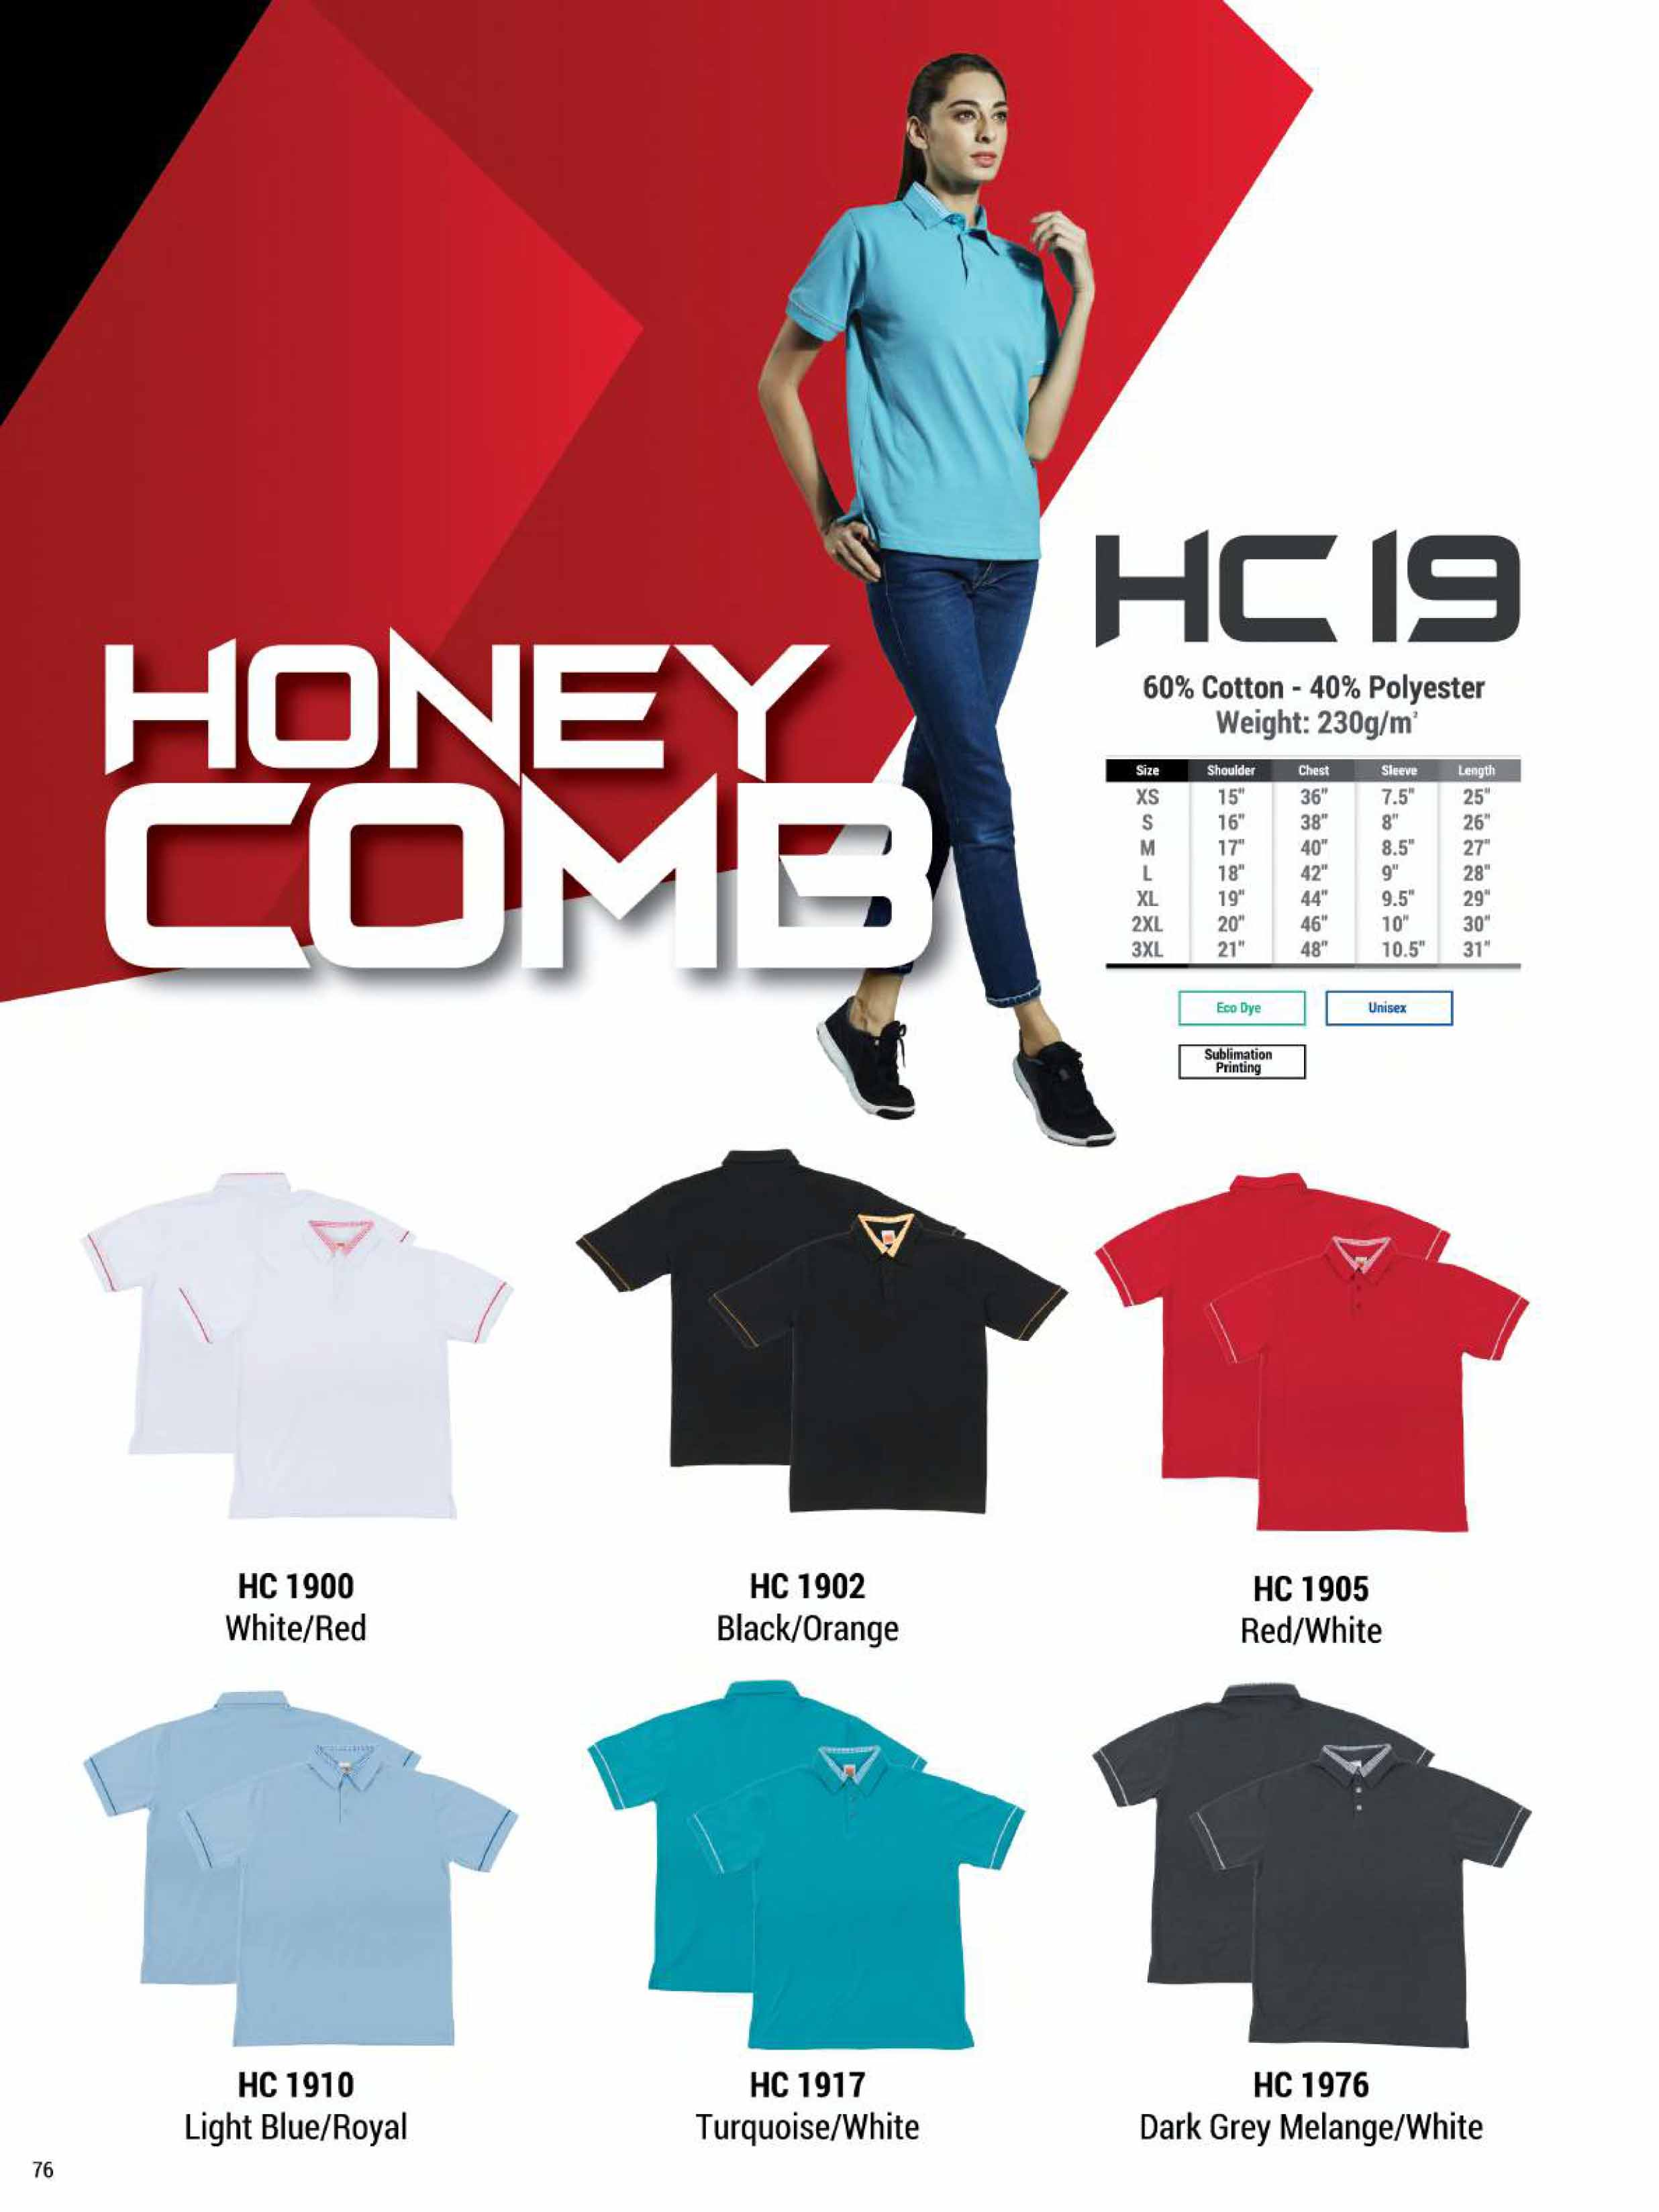 HC19 HONEYCOMB COTTON POLO T-SHIRT